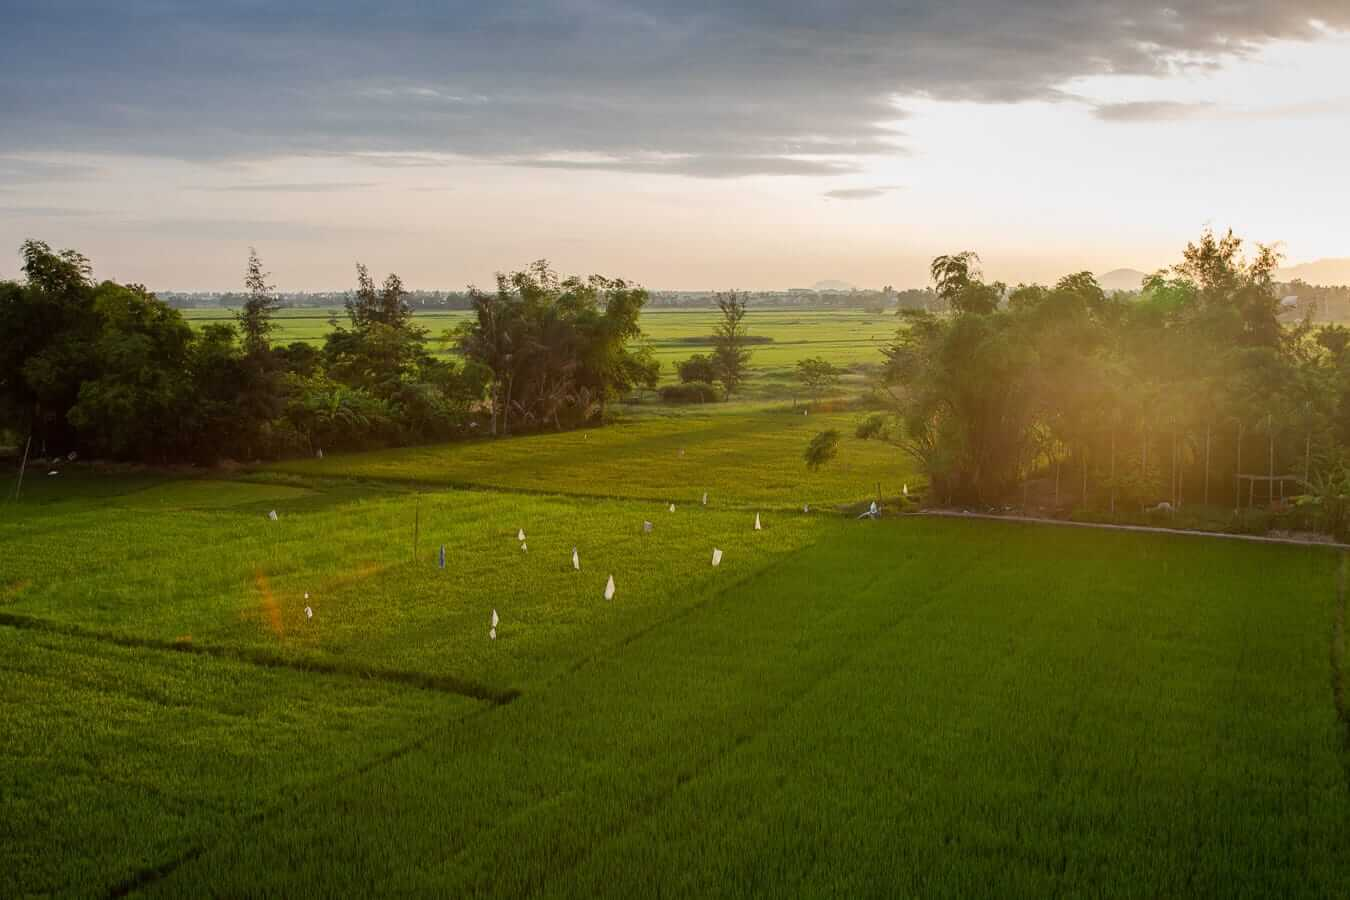 GreenLife Homestay: Where to stay in Hoi An